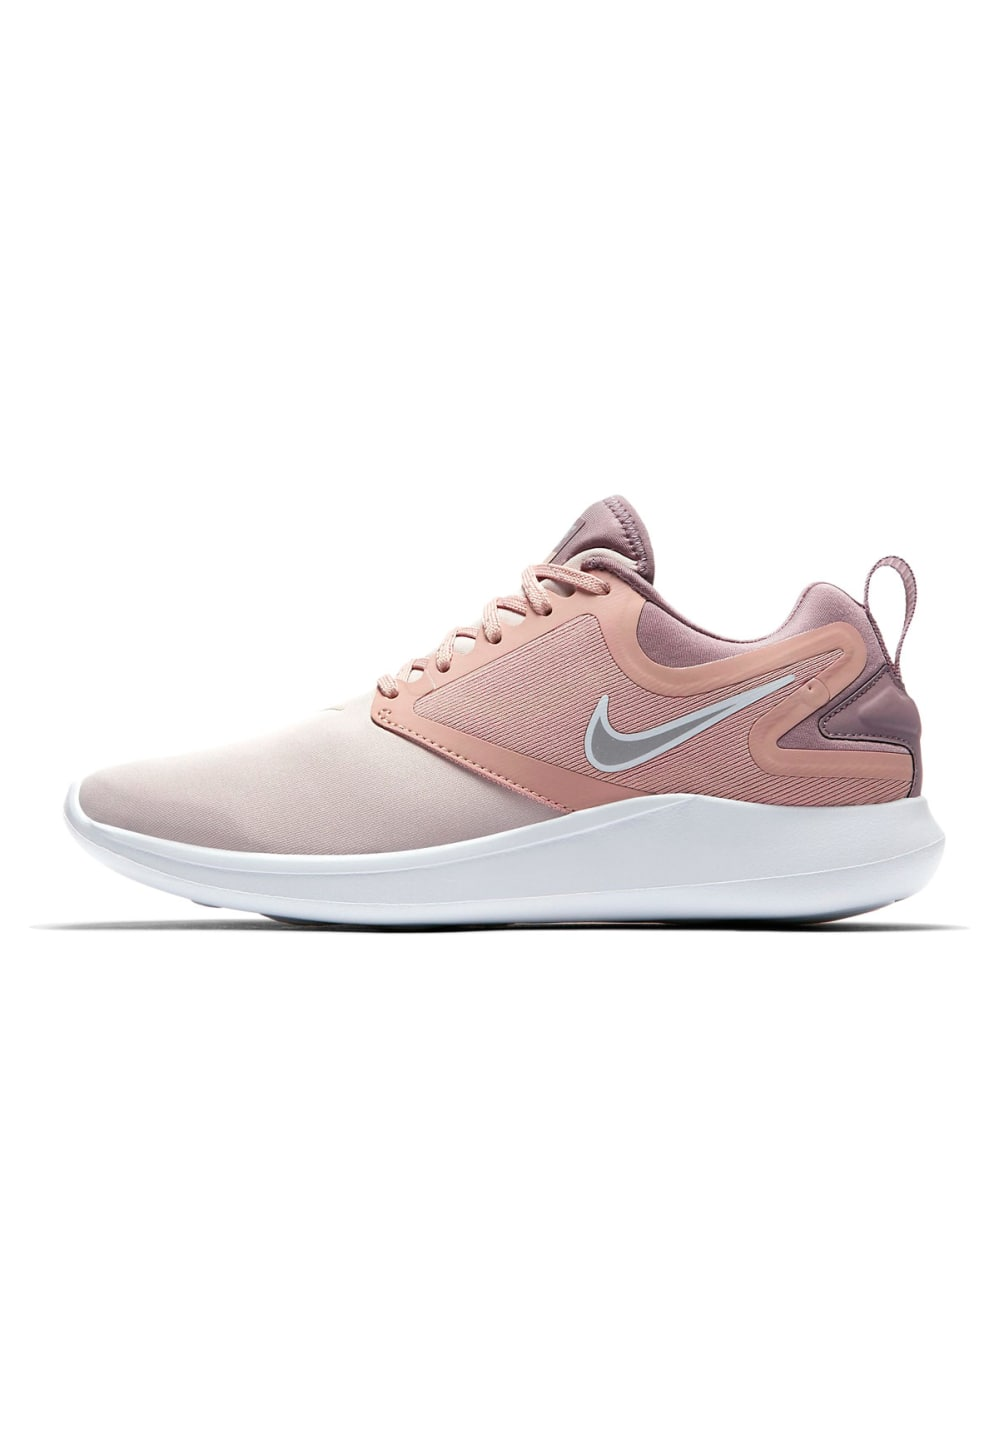 promo code 35a04 f6f37 Nike LunarSolo - Chaussures running pour Femme - Rose  21RUN